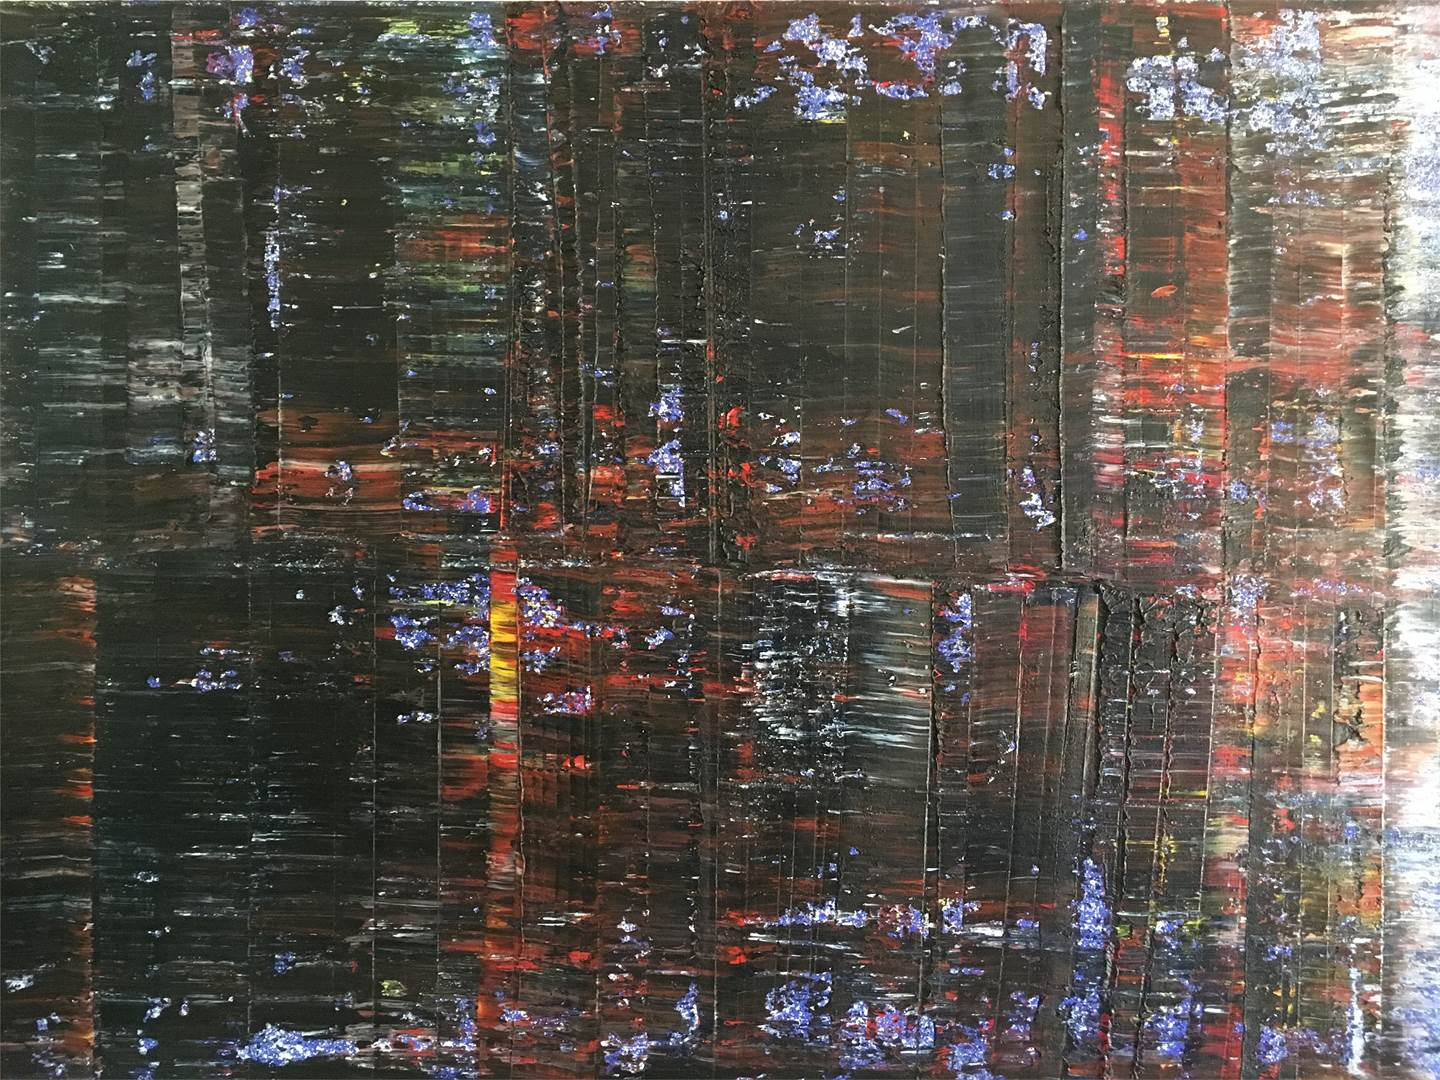 #9 (2014), original Abstract Oil Painting by Pedro Bom